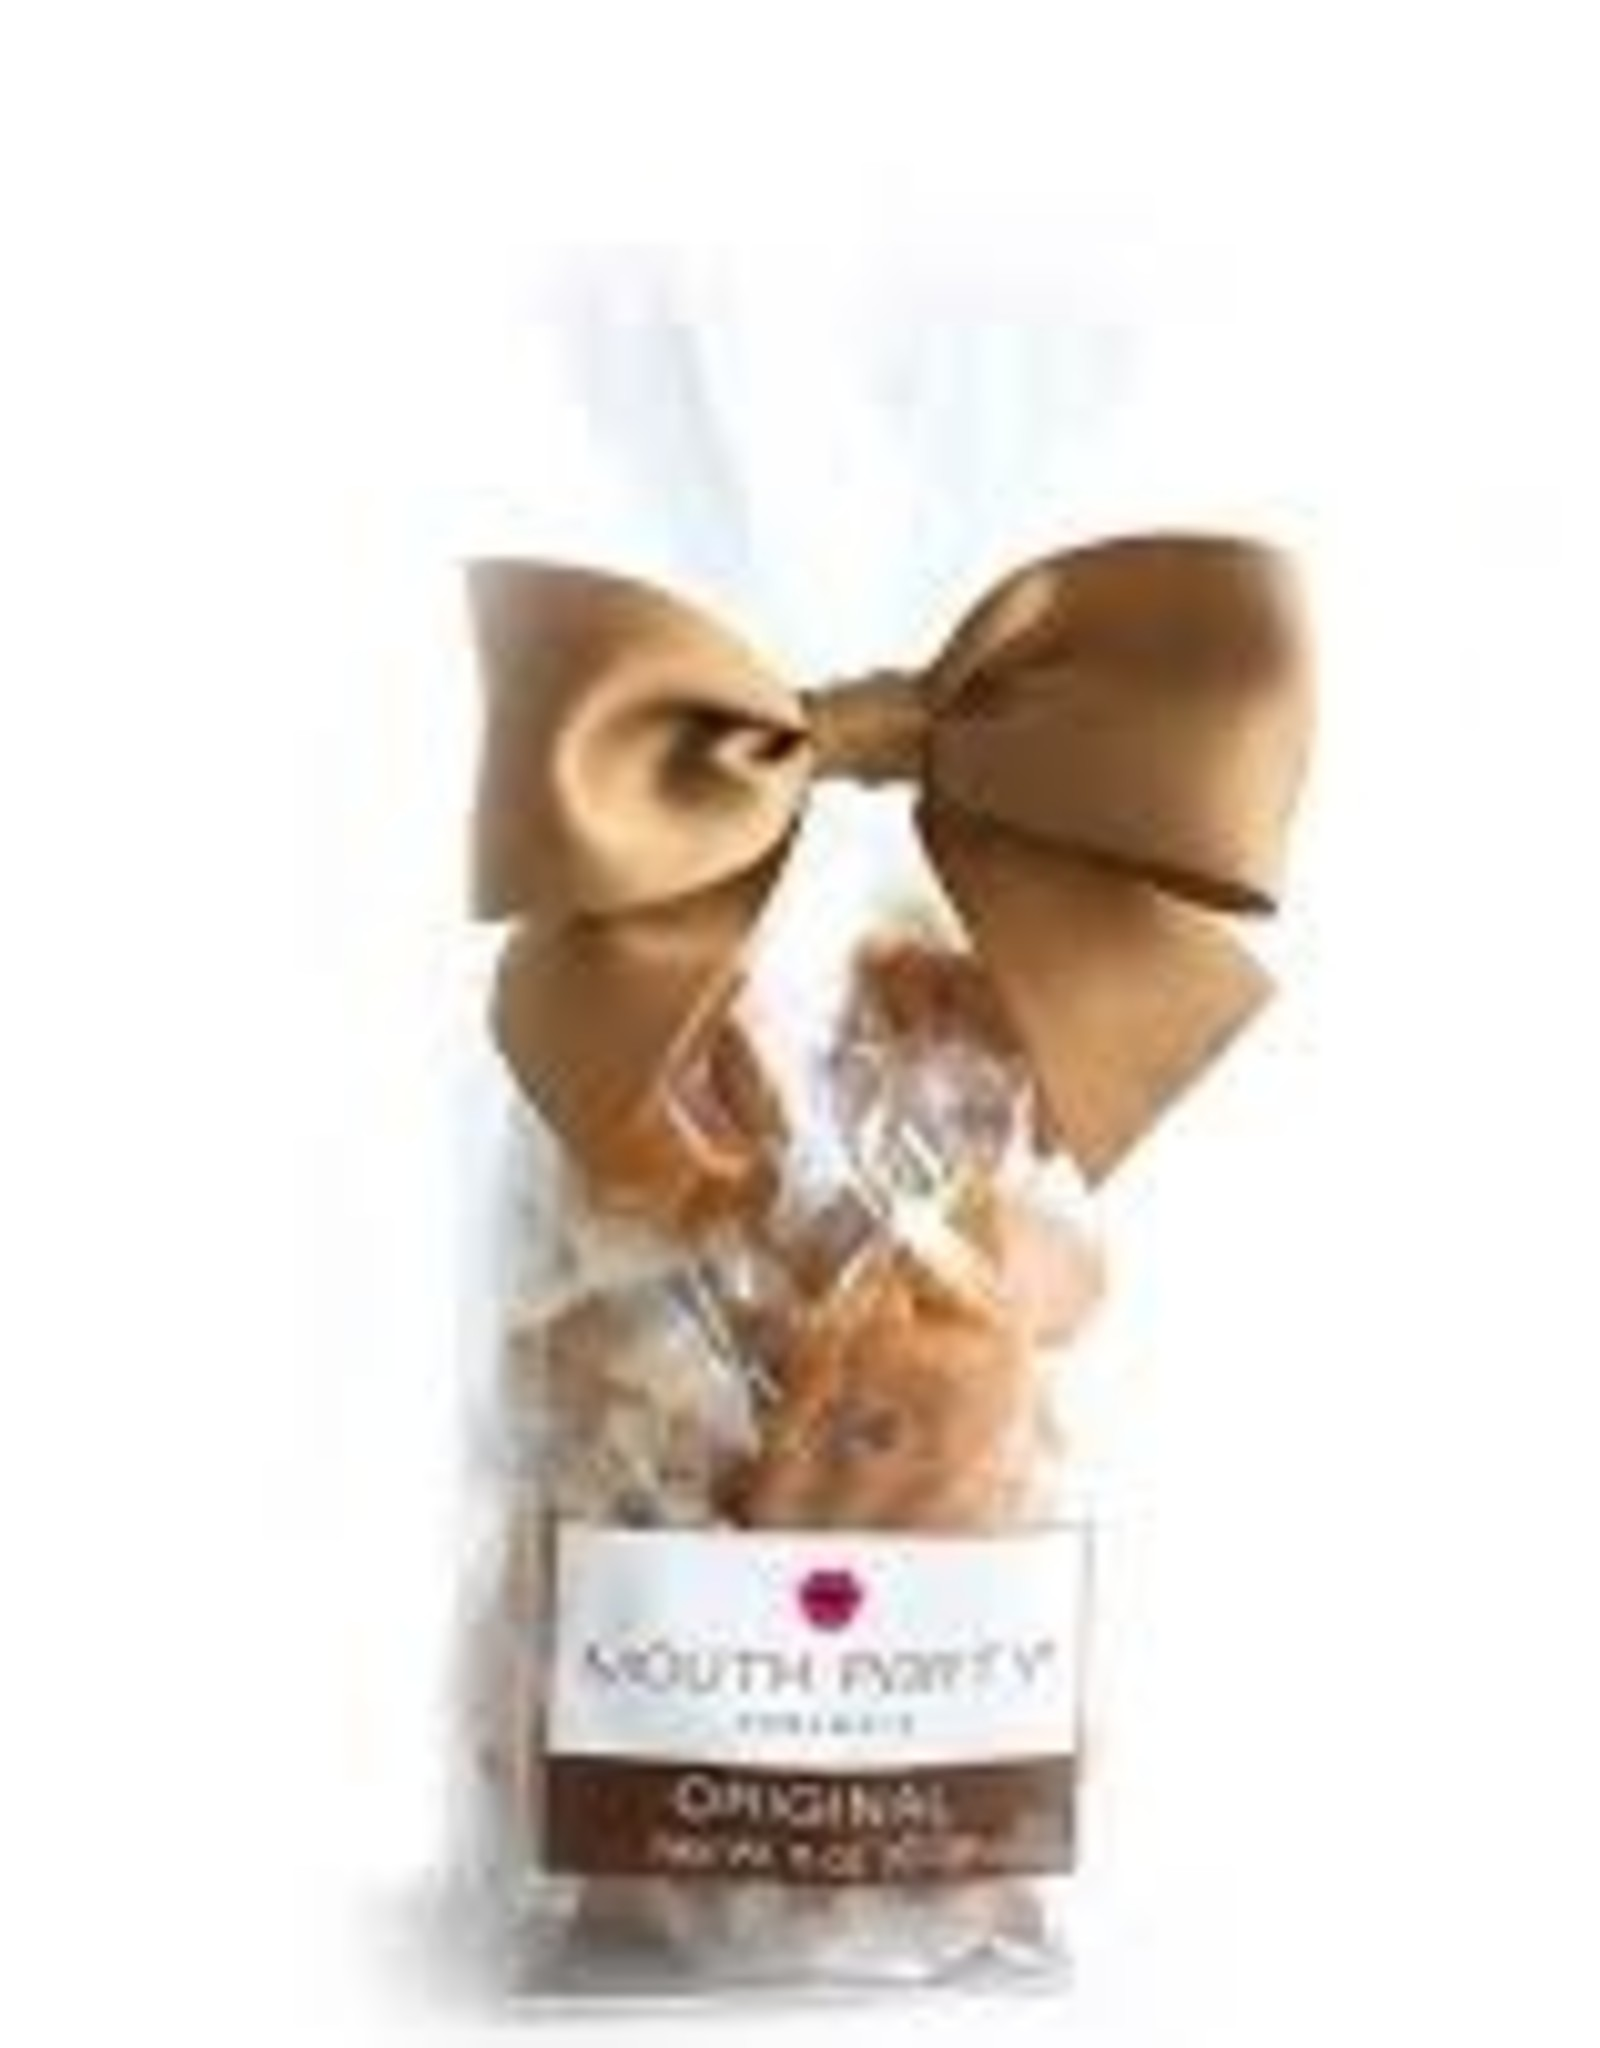 Mouth Party Mouth Party Caramels